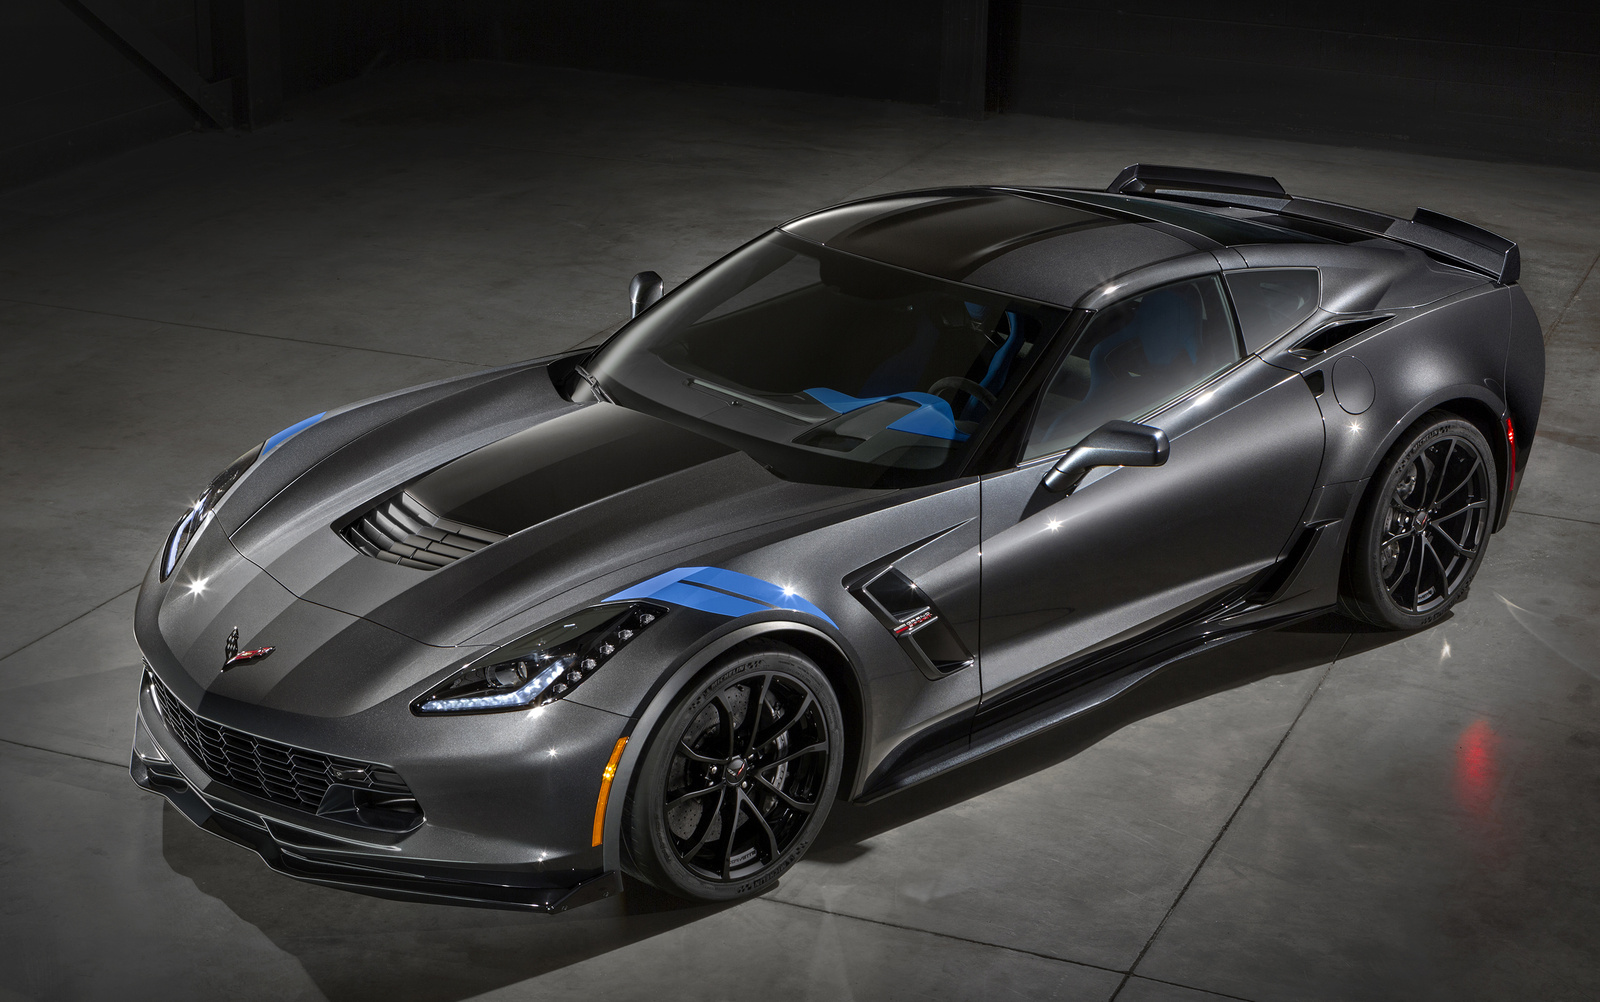 2017 2018 Chevrolet Corvette For Sale In Your Area